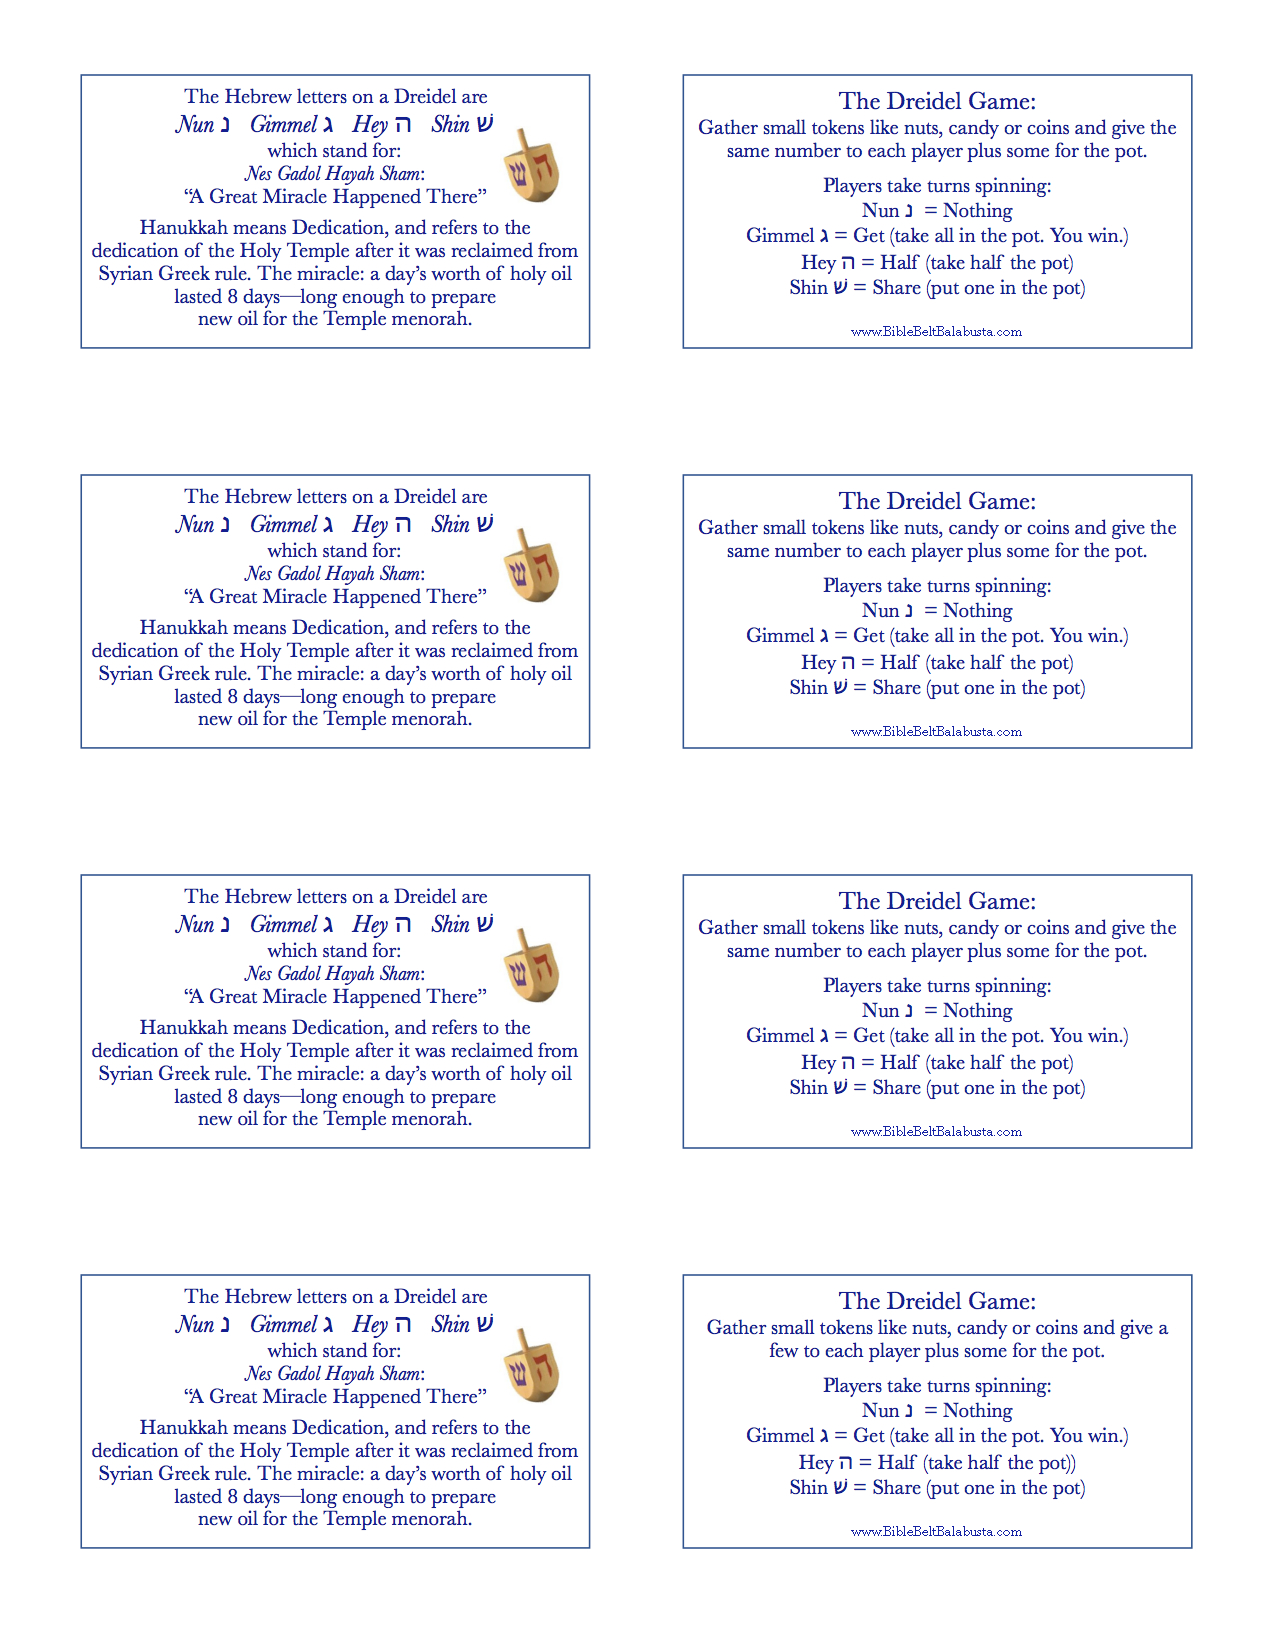 photo relating to Dreidel Game Rules Printable titled How Tos Wiki 88: How In the direction of Perform Dreidel Printable